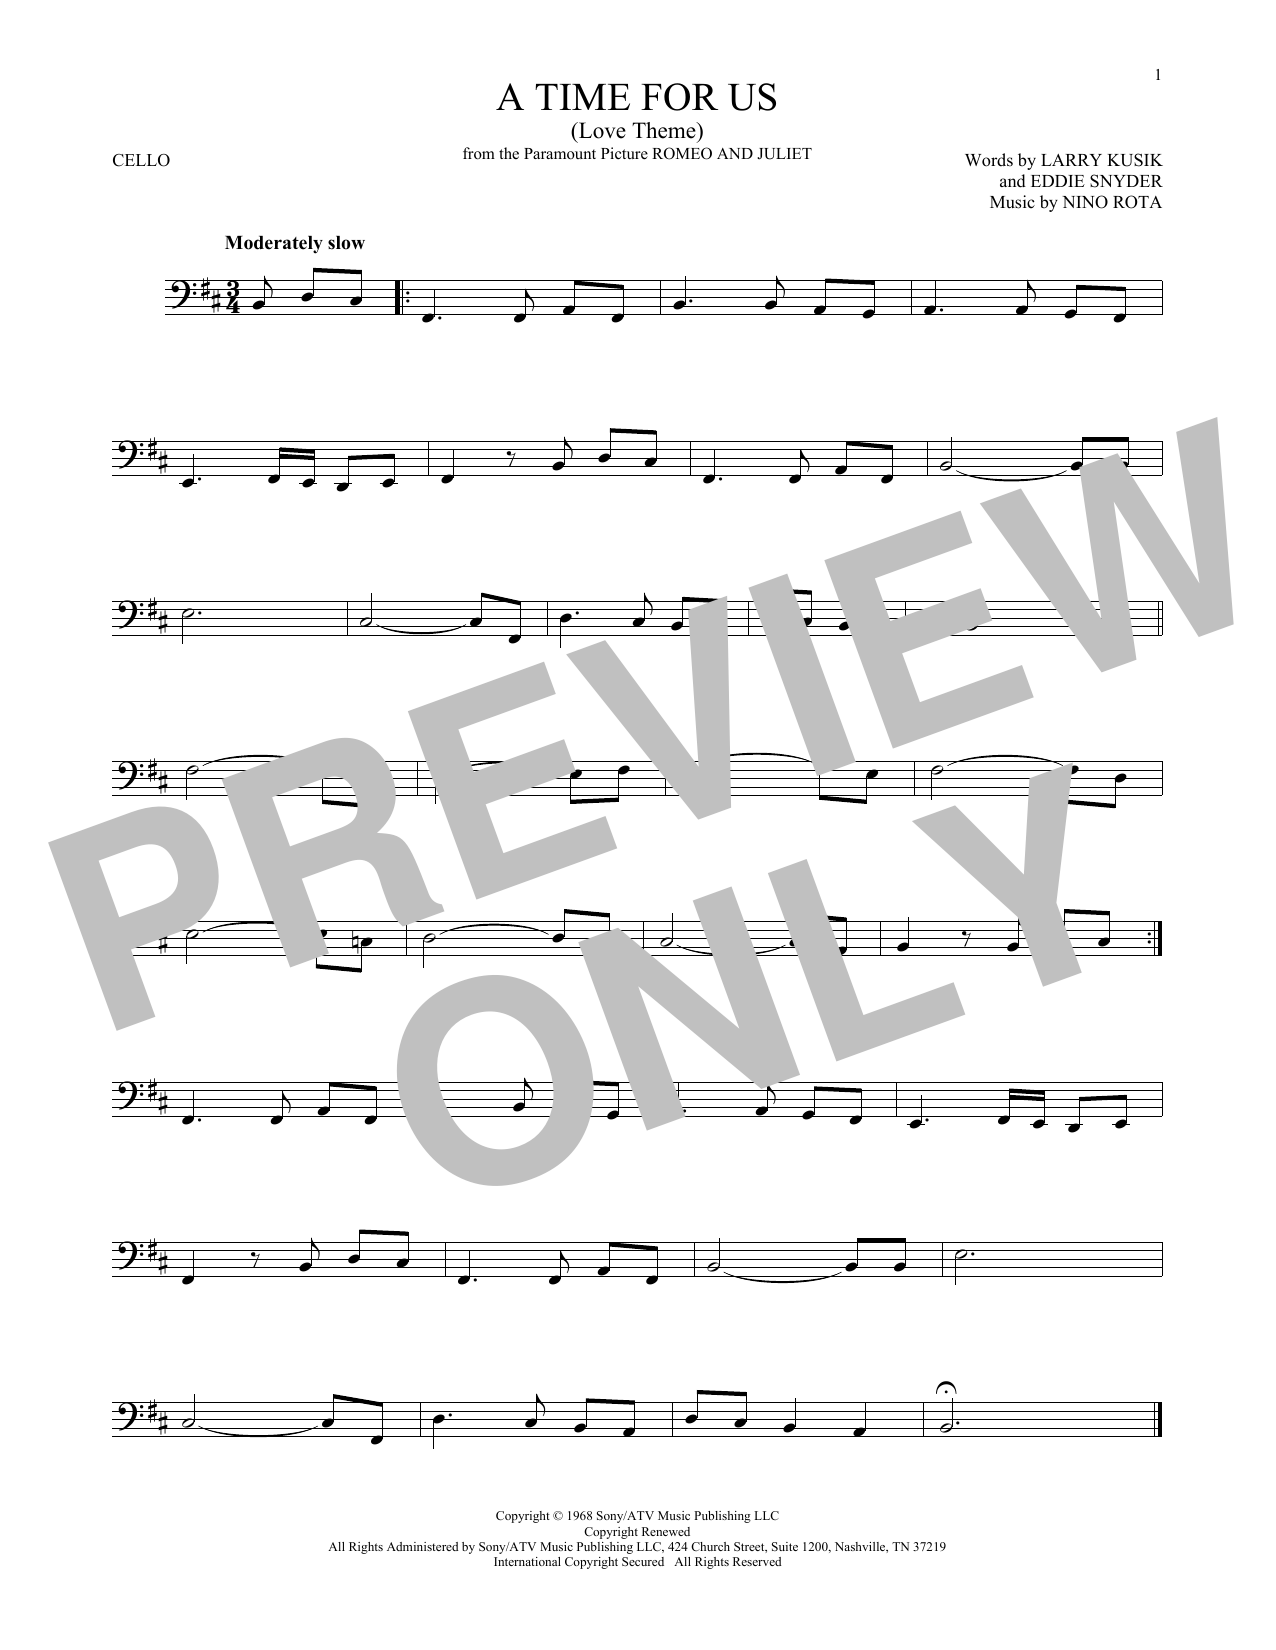 Larry Kusik A Time For Us (Love Theme) sheet music notes and chords. Download Printable PDF.